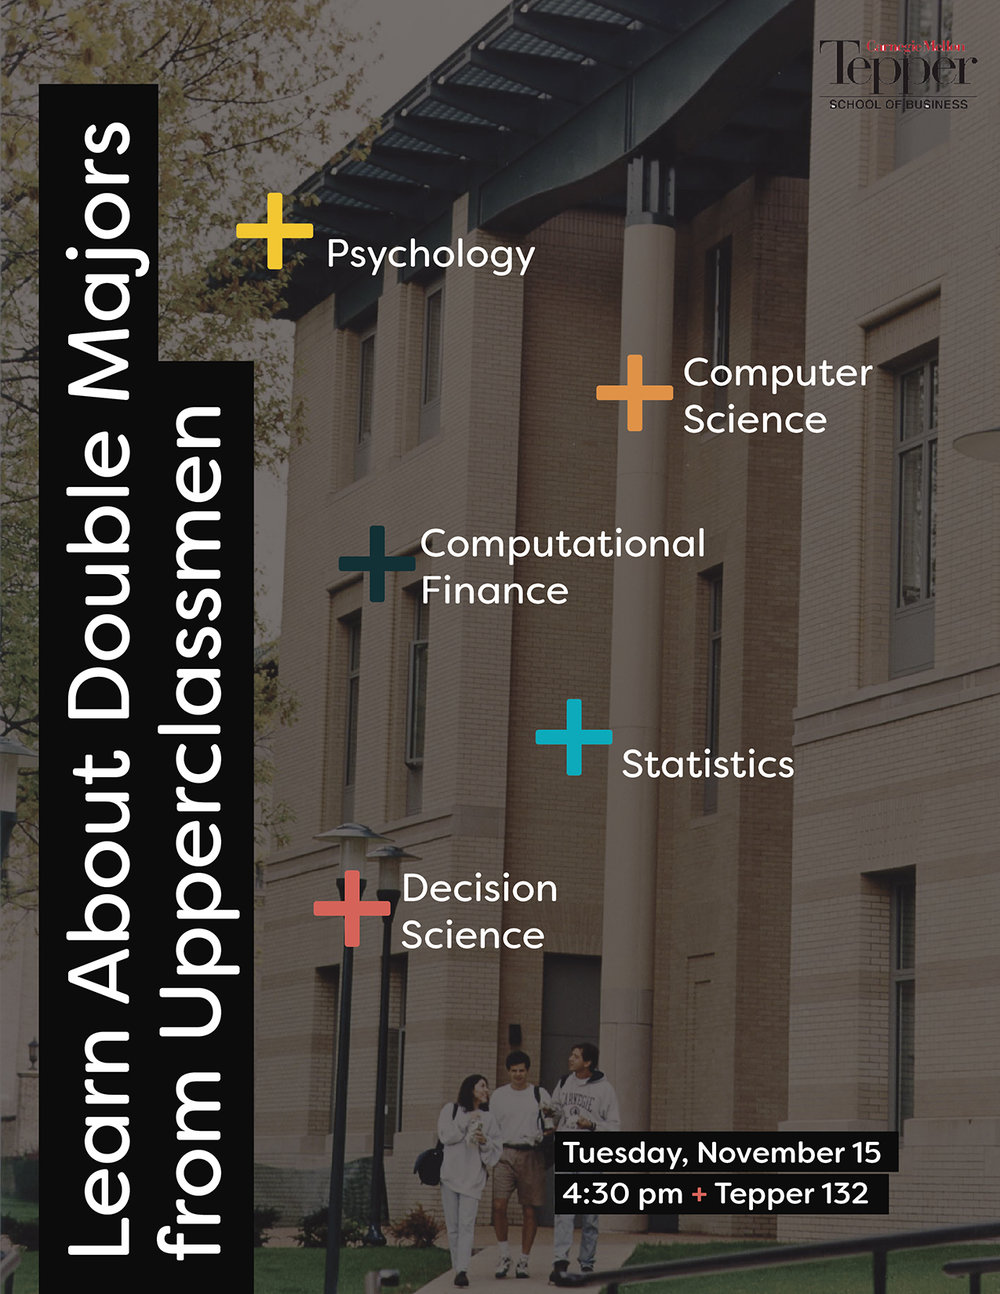 Business School Design Internship Poster 1